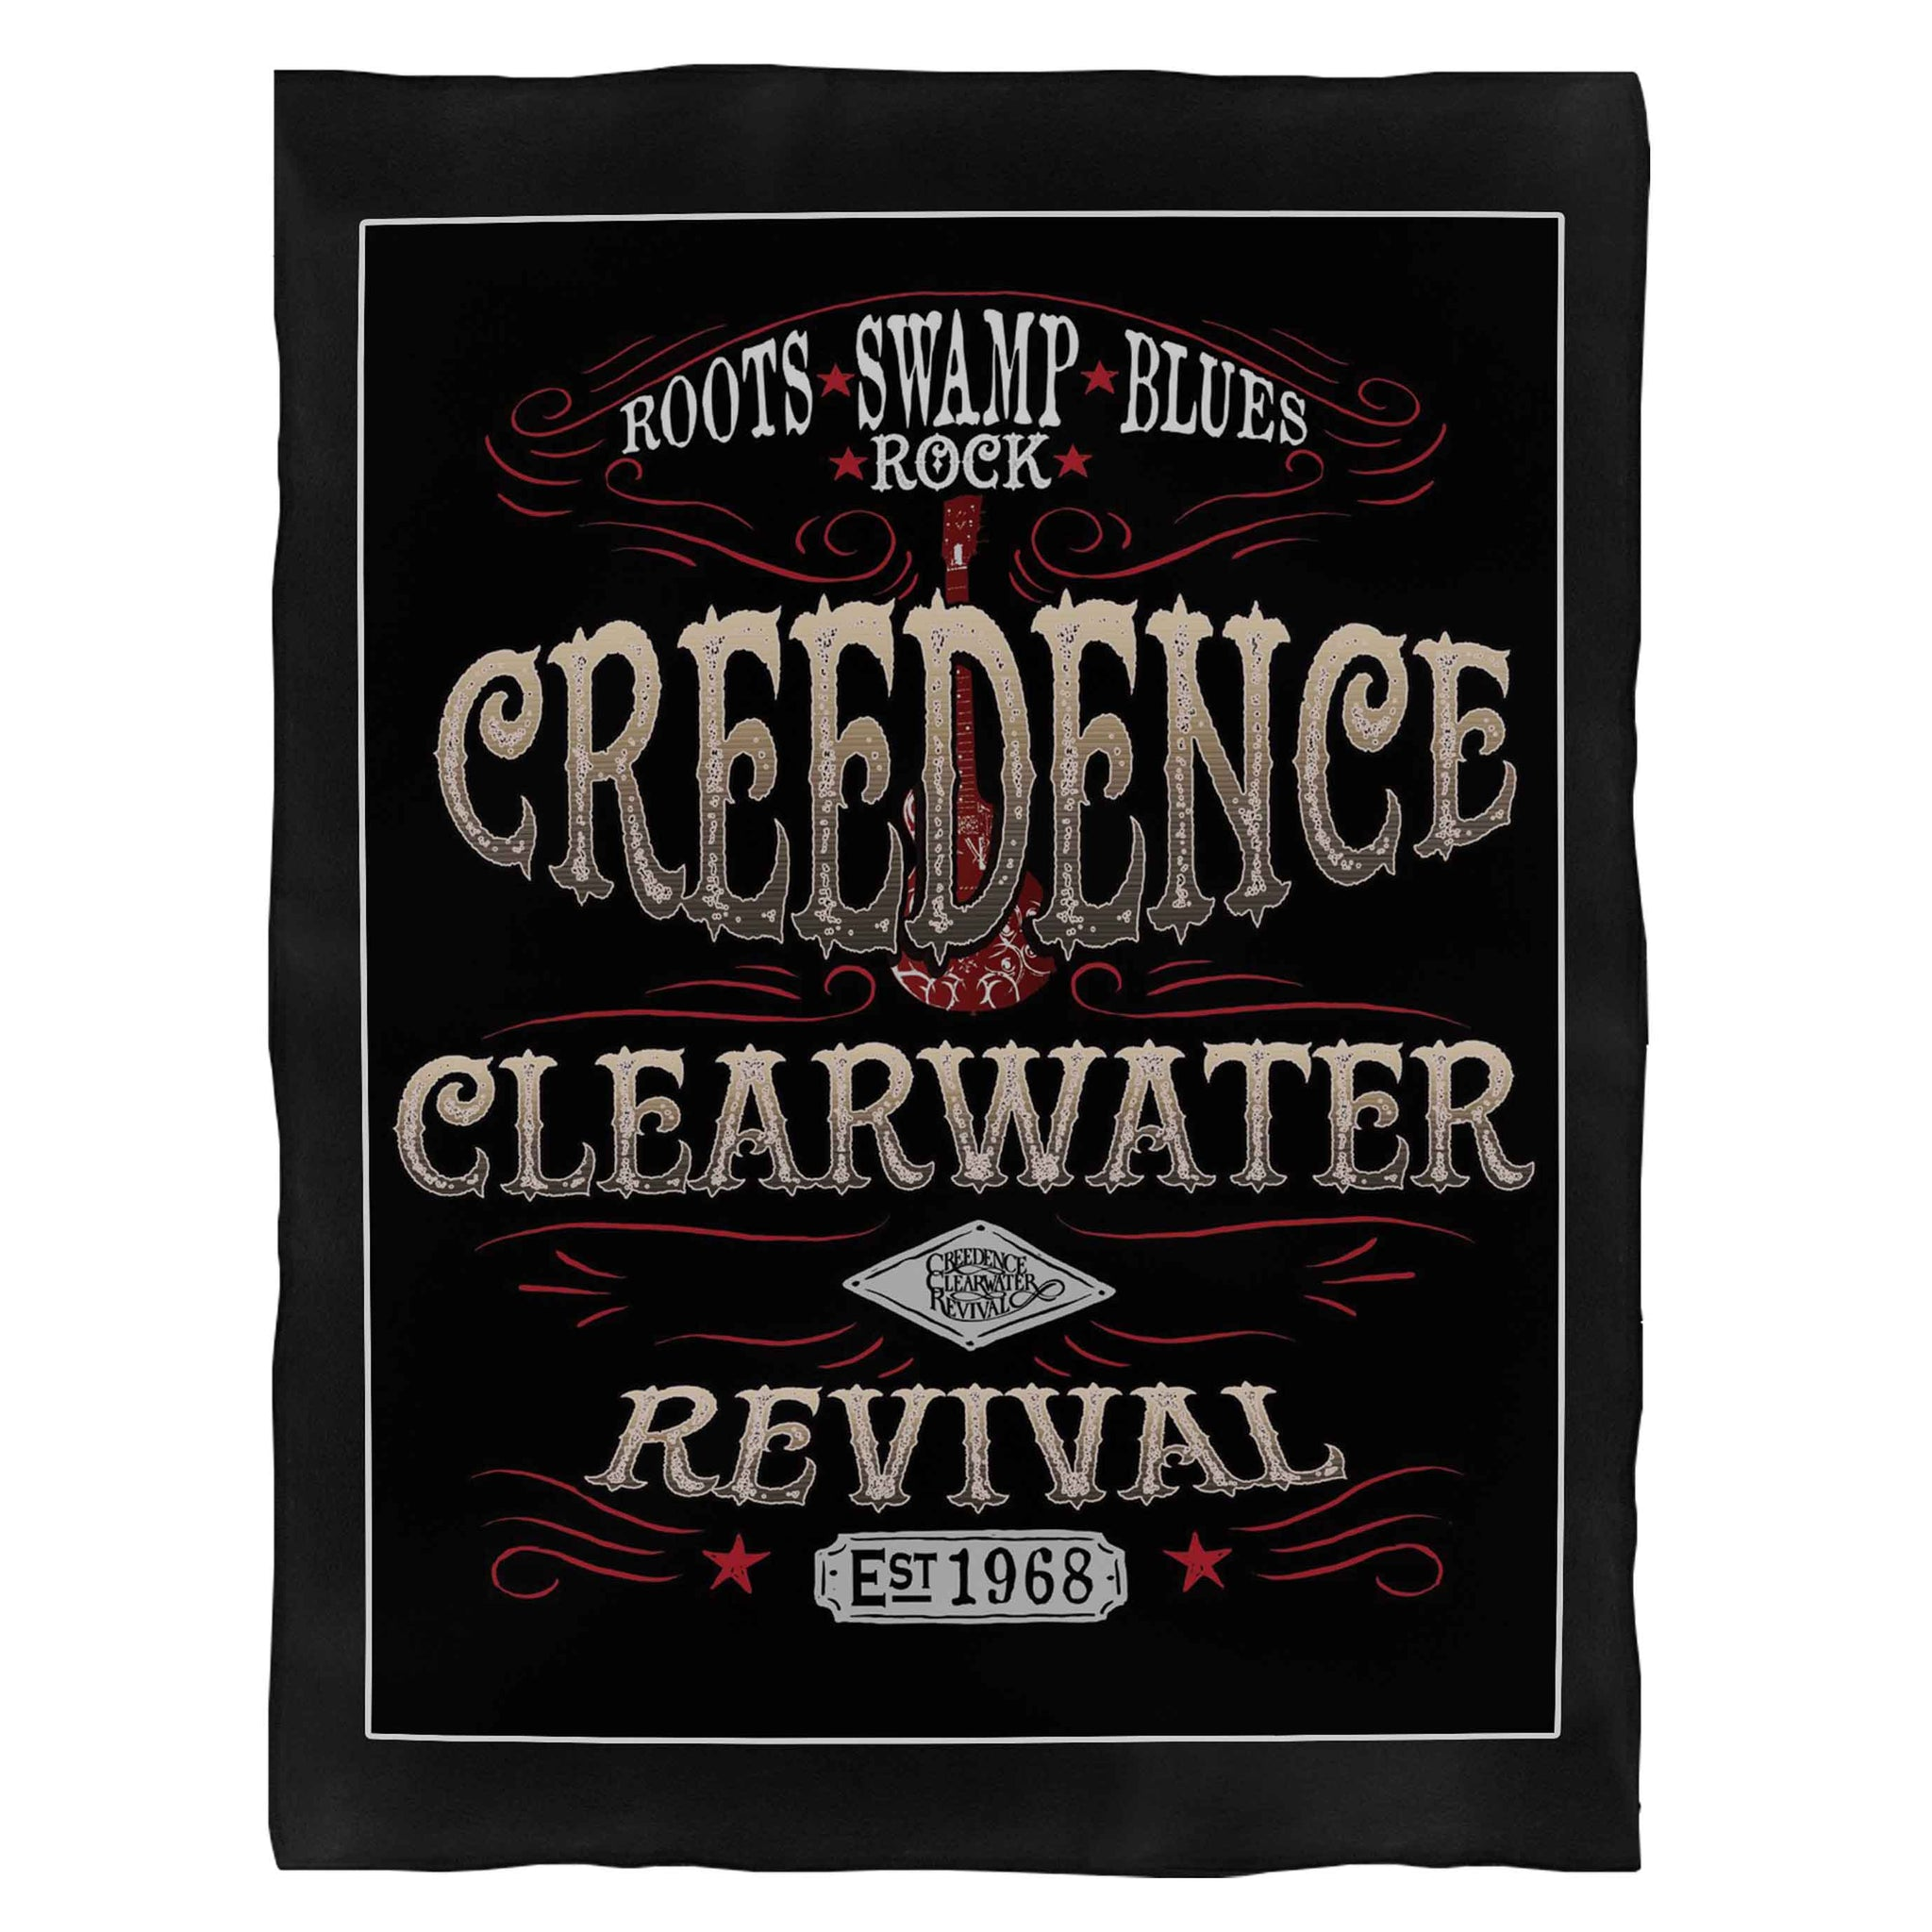 Creedence Clearwater Revival Inspired Swamp Rock Fleece Blanket